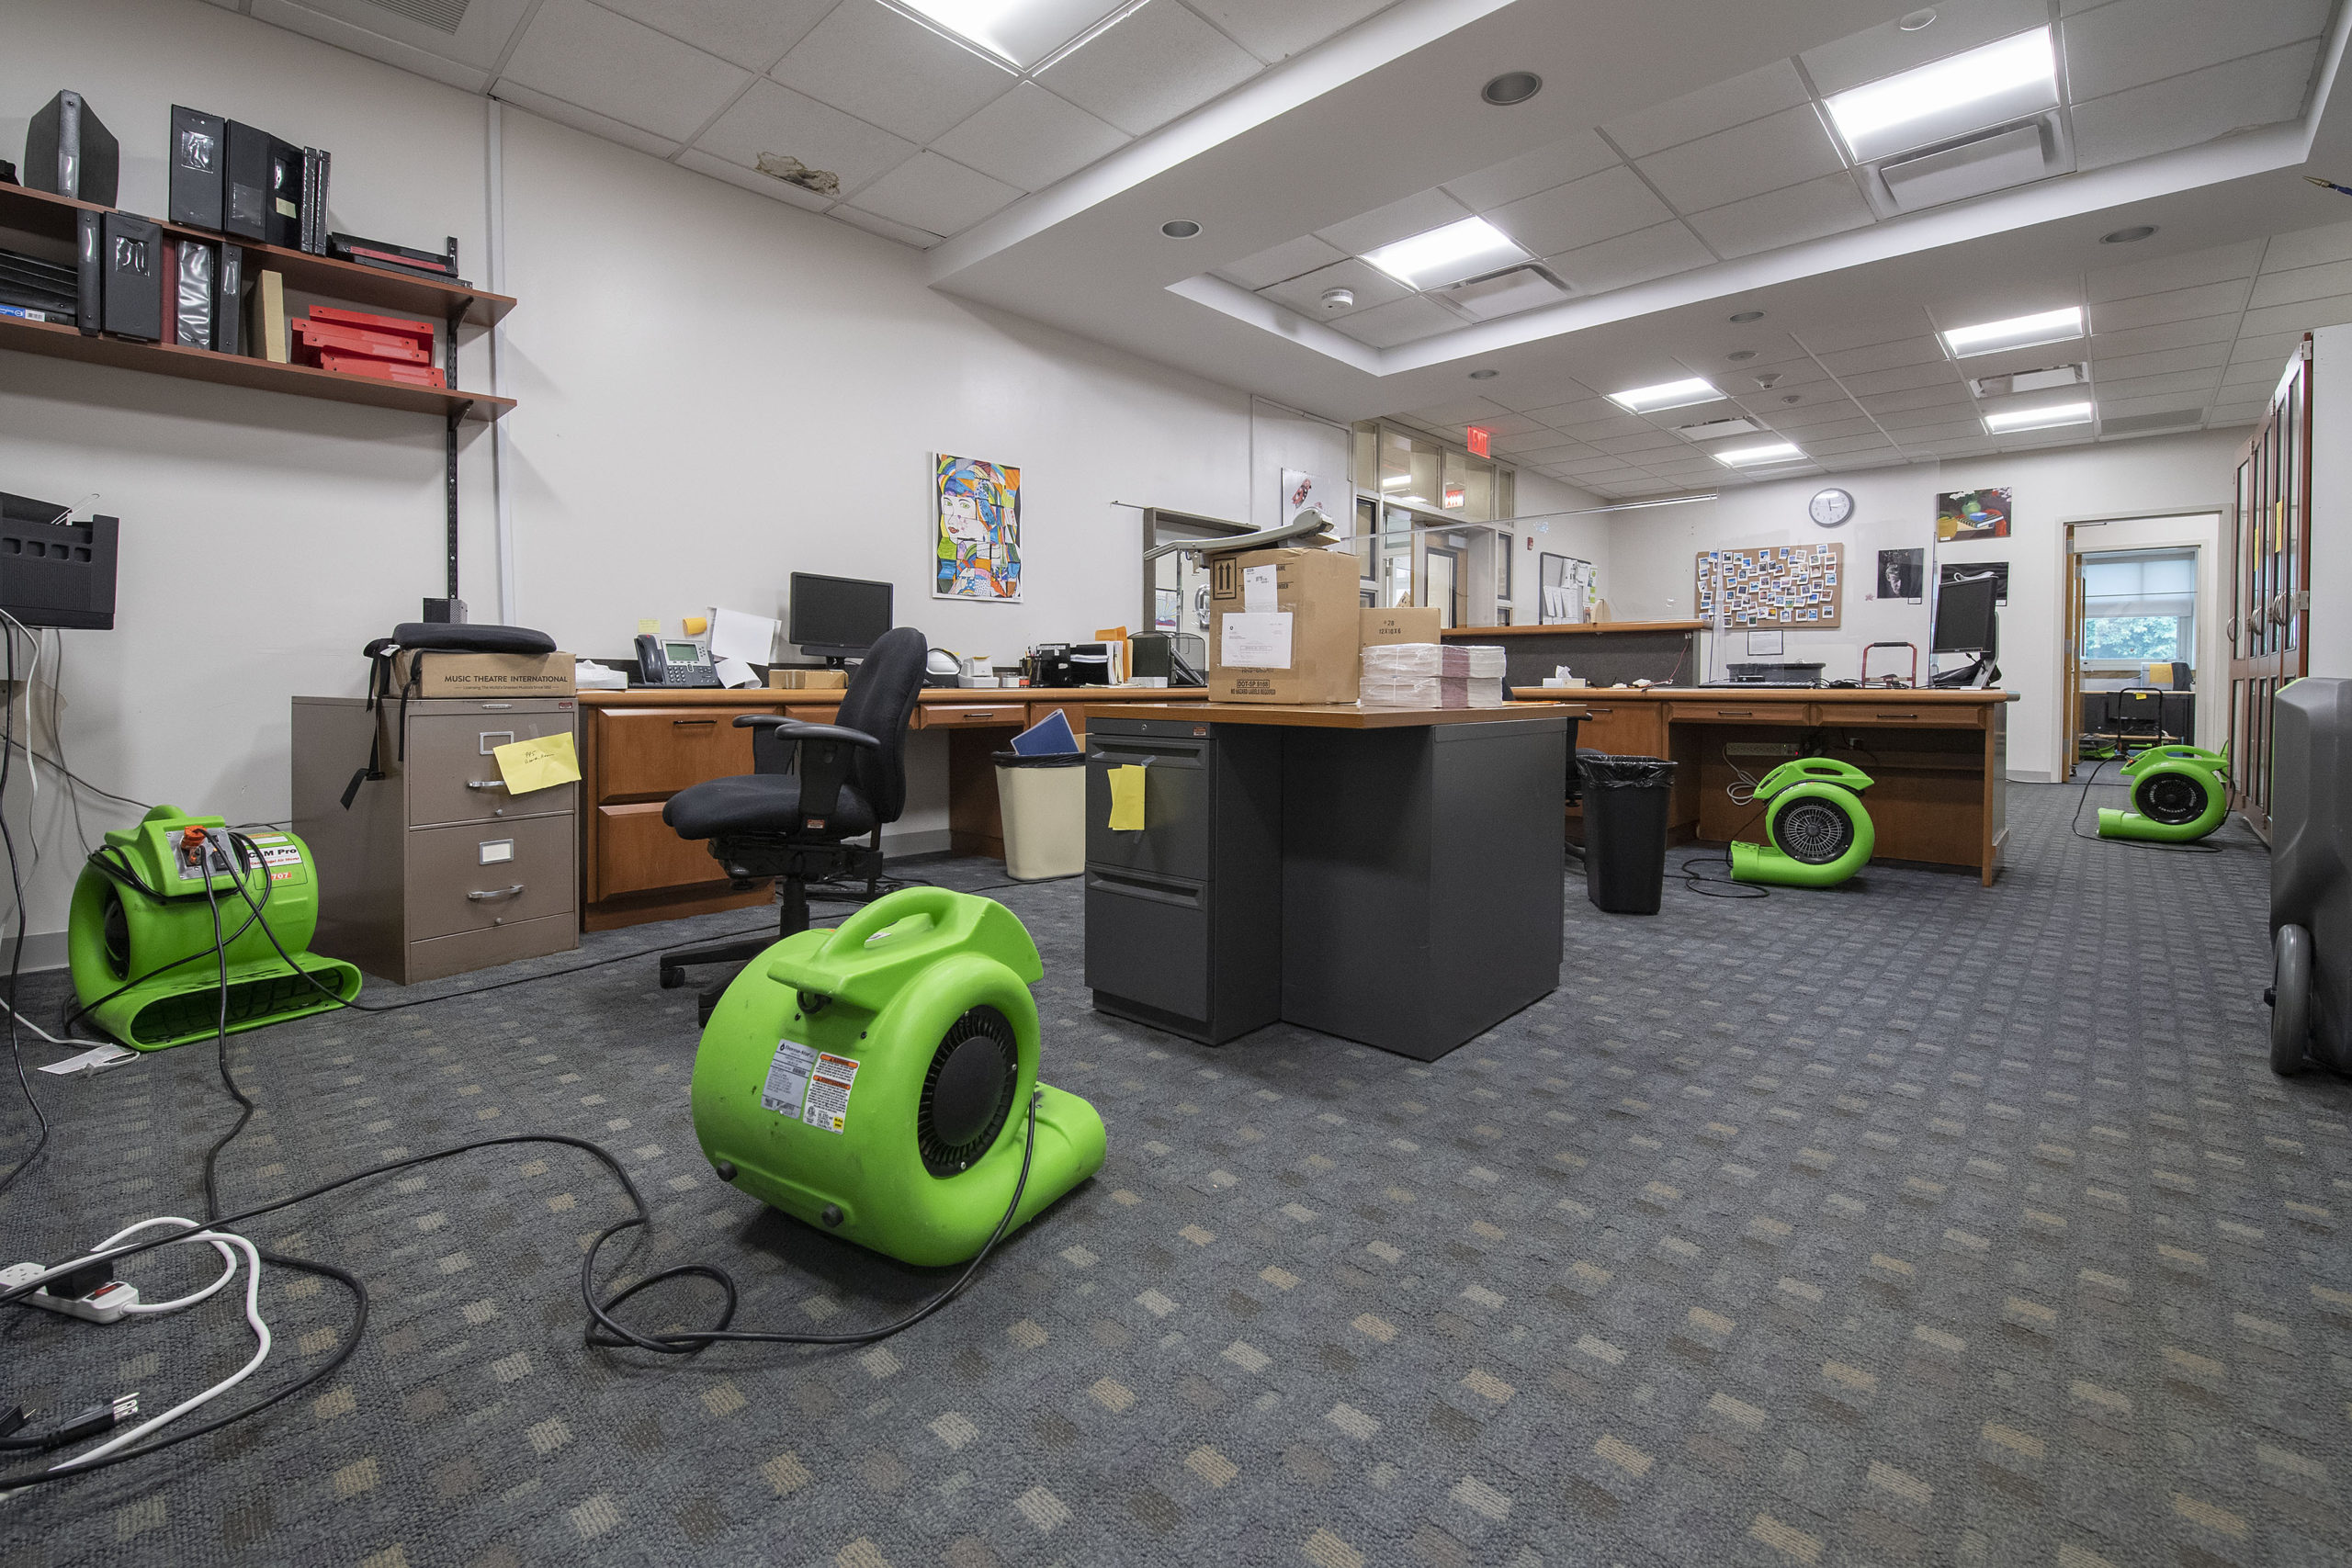 Fans have been placed throughout the East Hampton School District's administrative offices to help dry the carpet, which was flooded when a water pipe burst over the weekend. MICHAEL HELLER